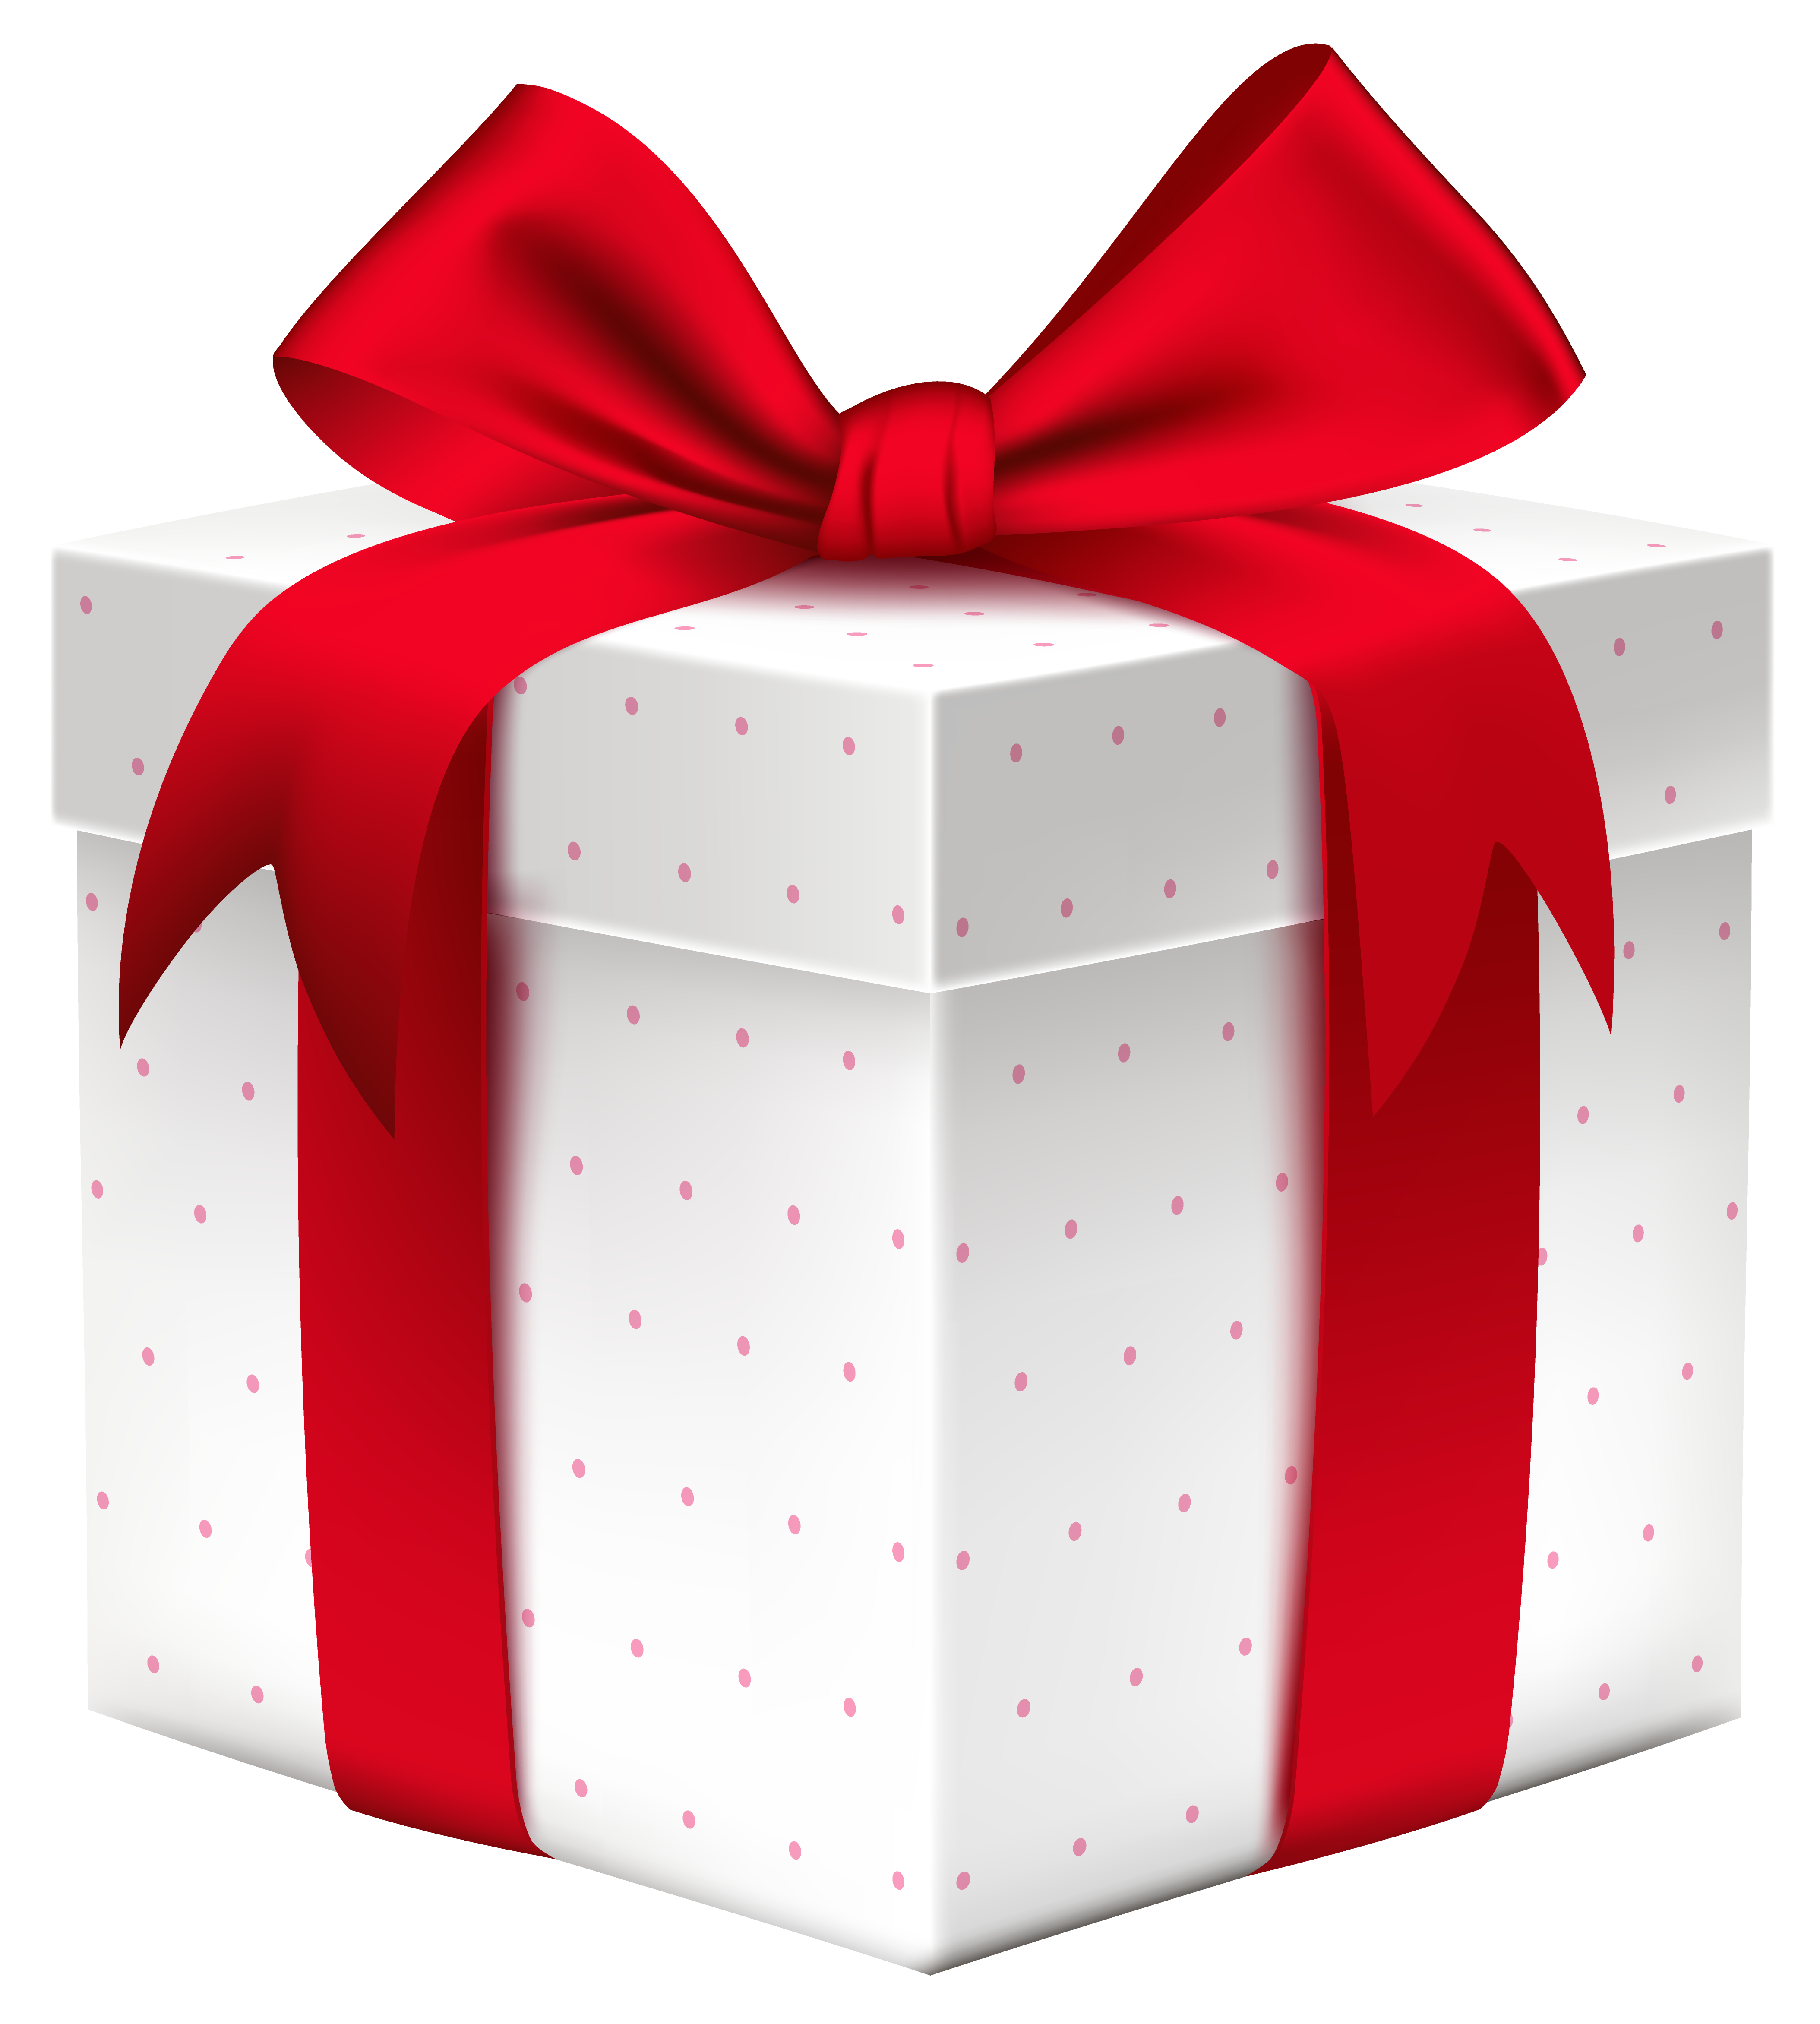 Gift High-Quality PNG